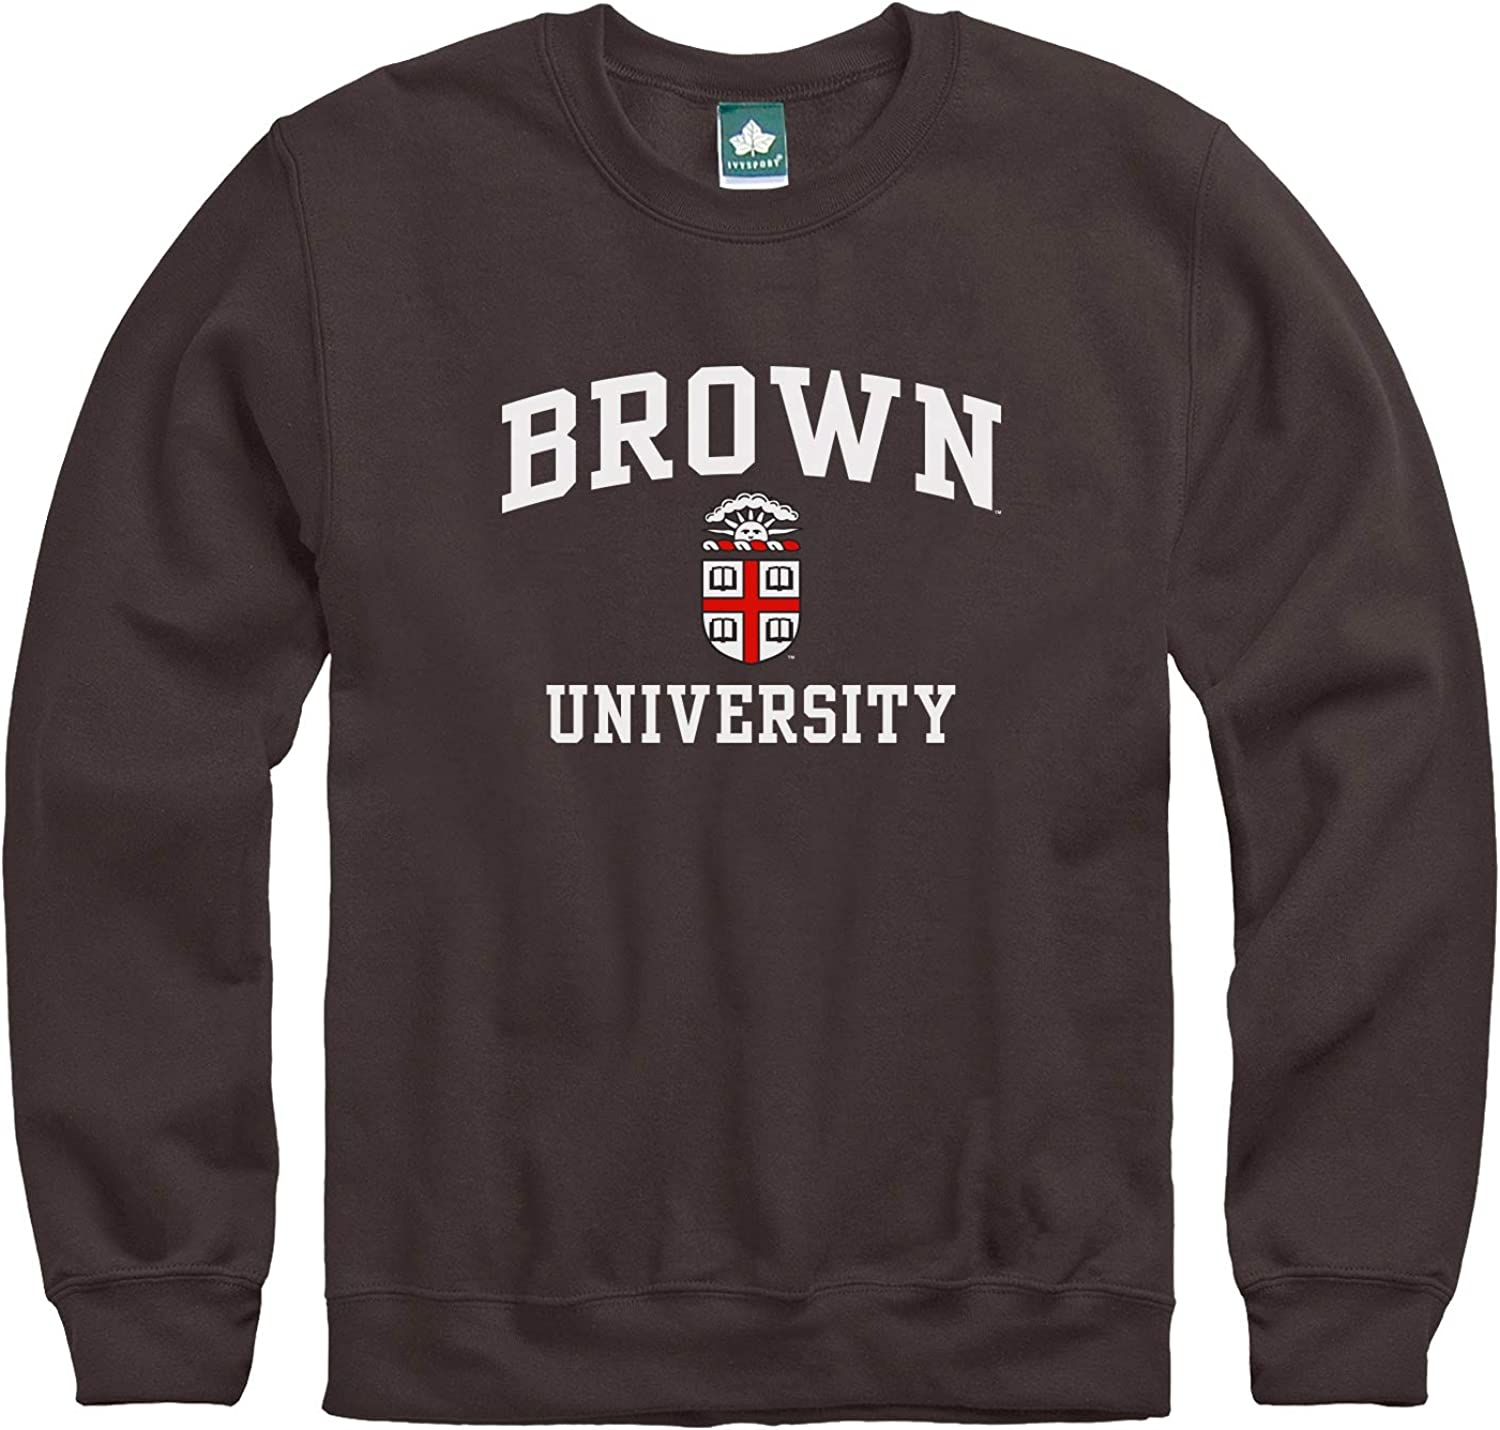 Ivysport Premium Cotton Crewneck Sweatshirt with Crest Logo NCAA Colleges